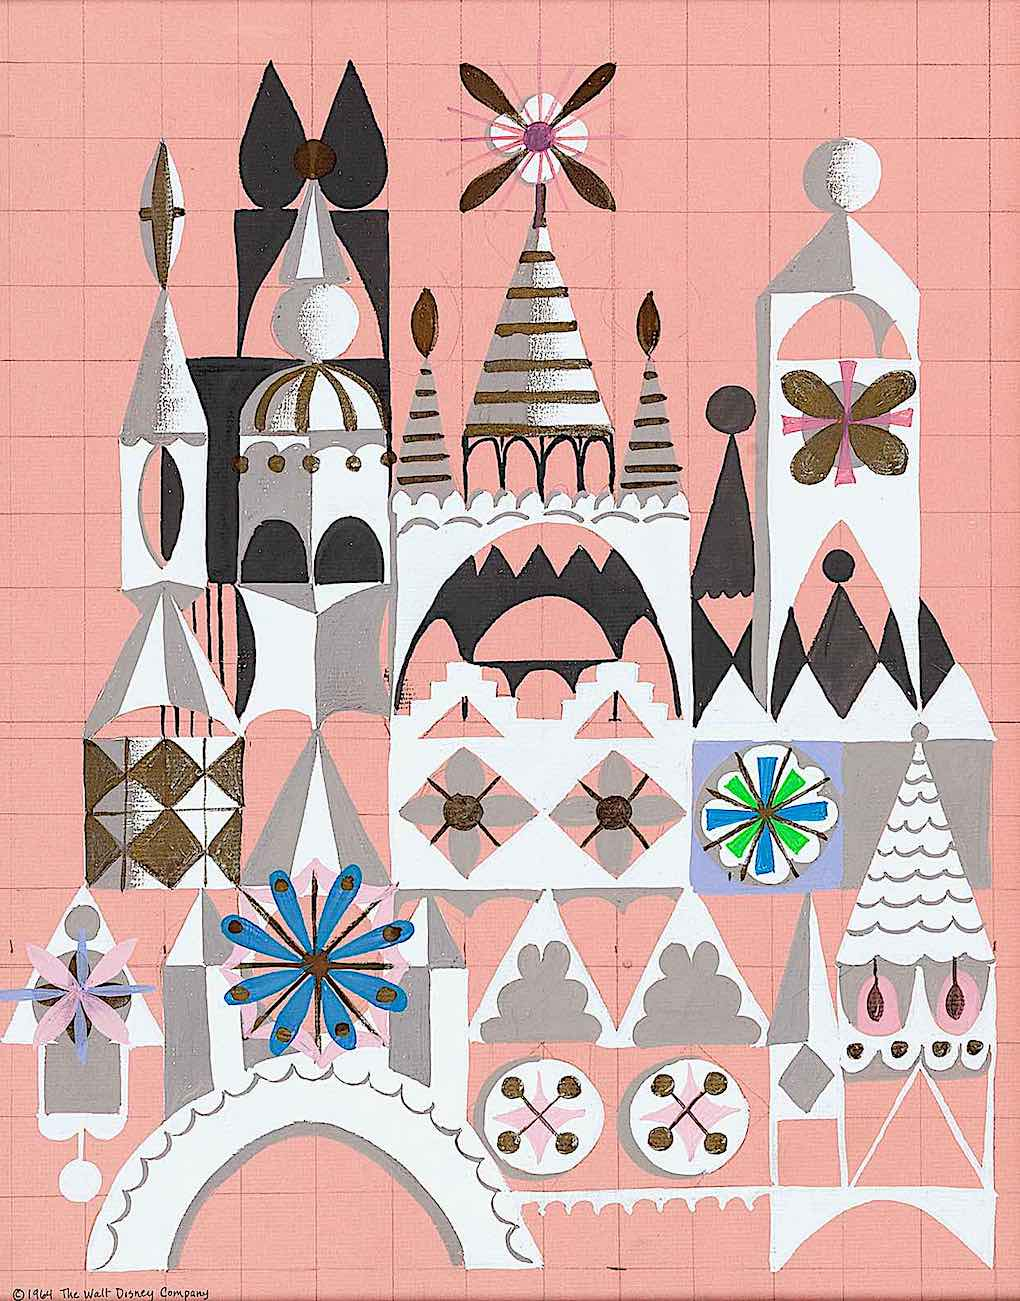 a Disney mural of a castle by Mary Blair